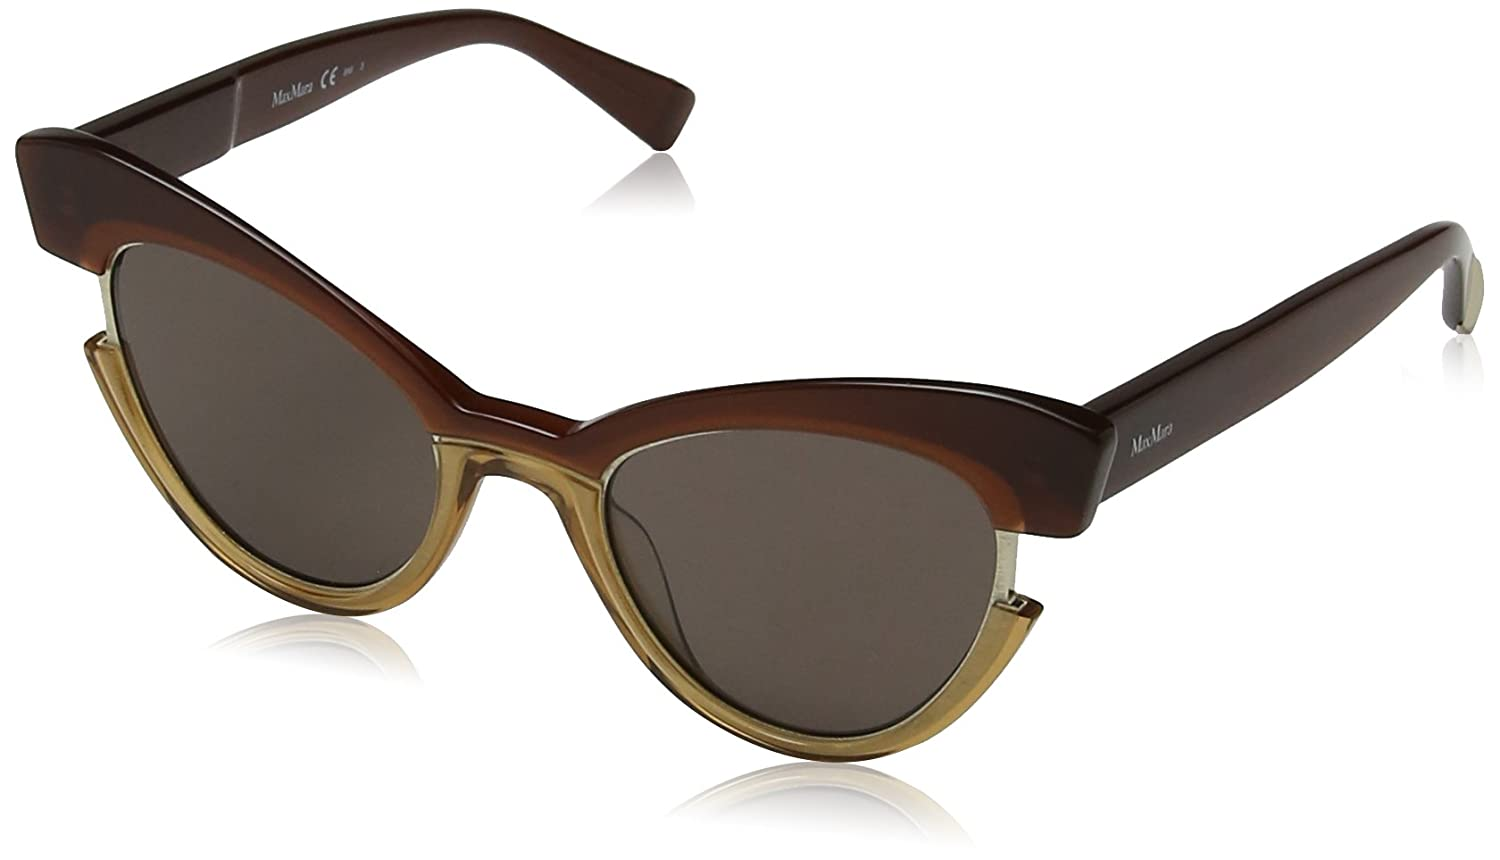 f8b35aa3029 Amazon.com  Max Mara Women s Mm Ingrid Cateye Sunglasses